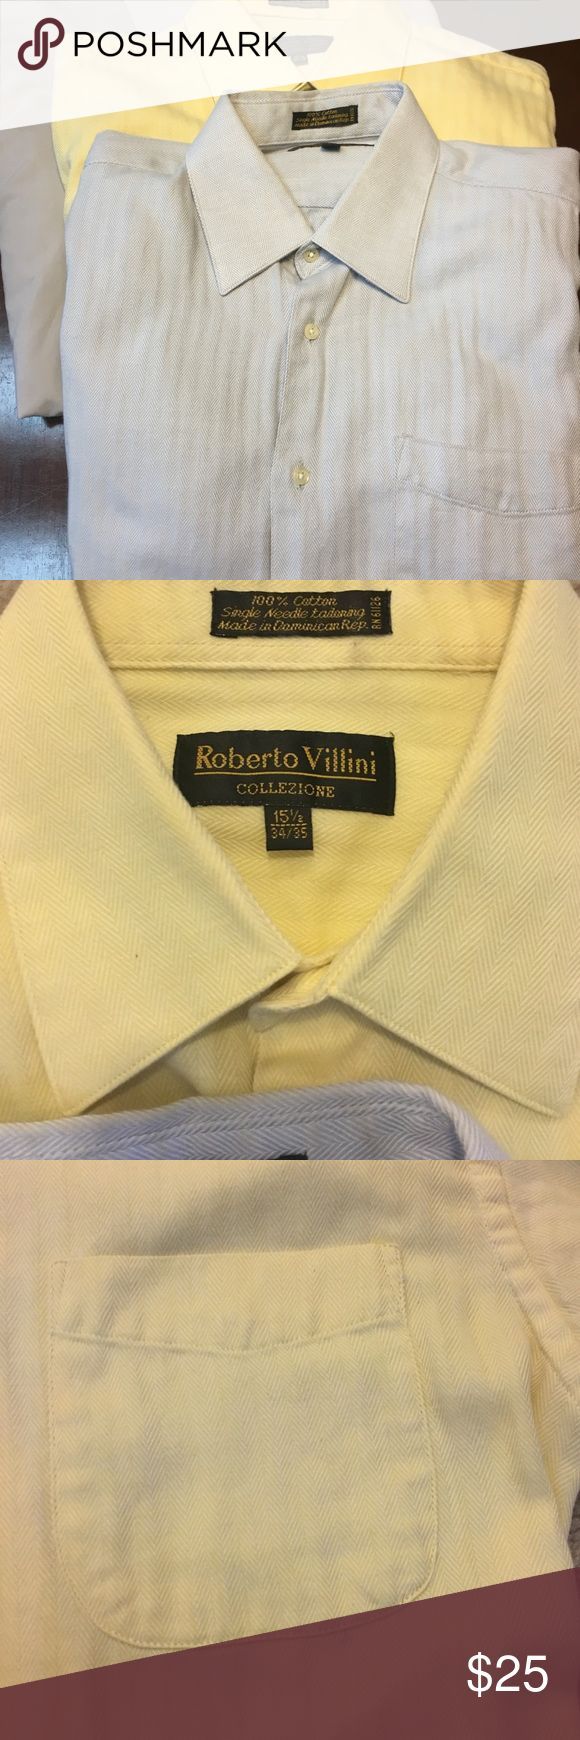 Lot of 3 💯 % Cotton Herringbone button down shirt 2 well made single needle 100% Cotton herringbone shirts one yellow and one blue featuring french cuff design. (cuff links not included) Third shirt is light gray poly/cotton blend. All size 15 1/2 roberto villini Shirts Dress Shirts